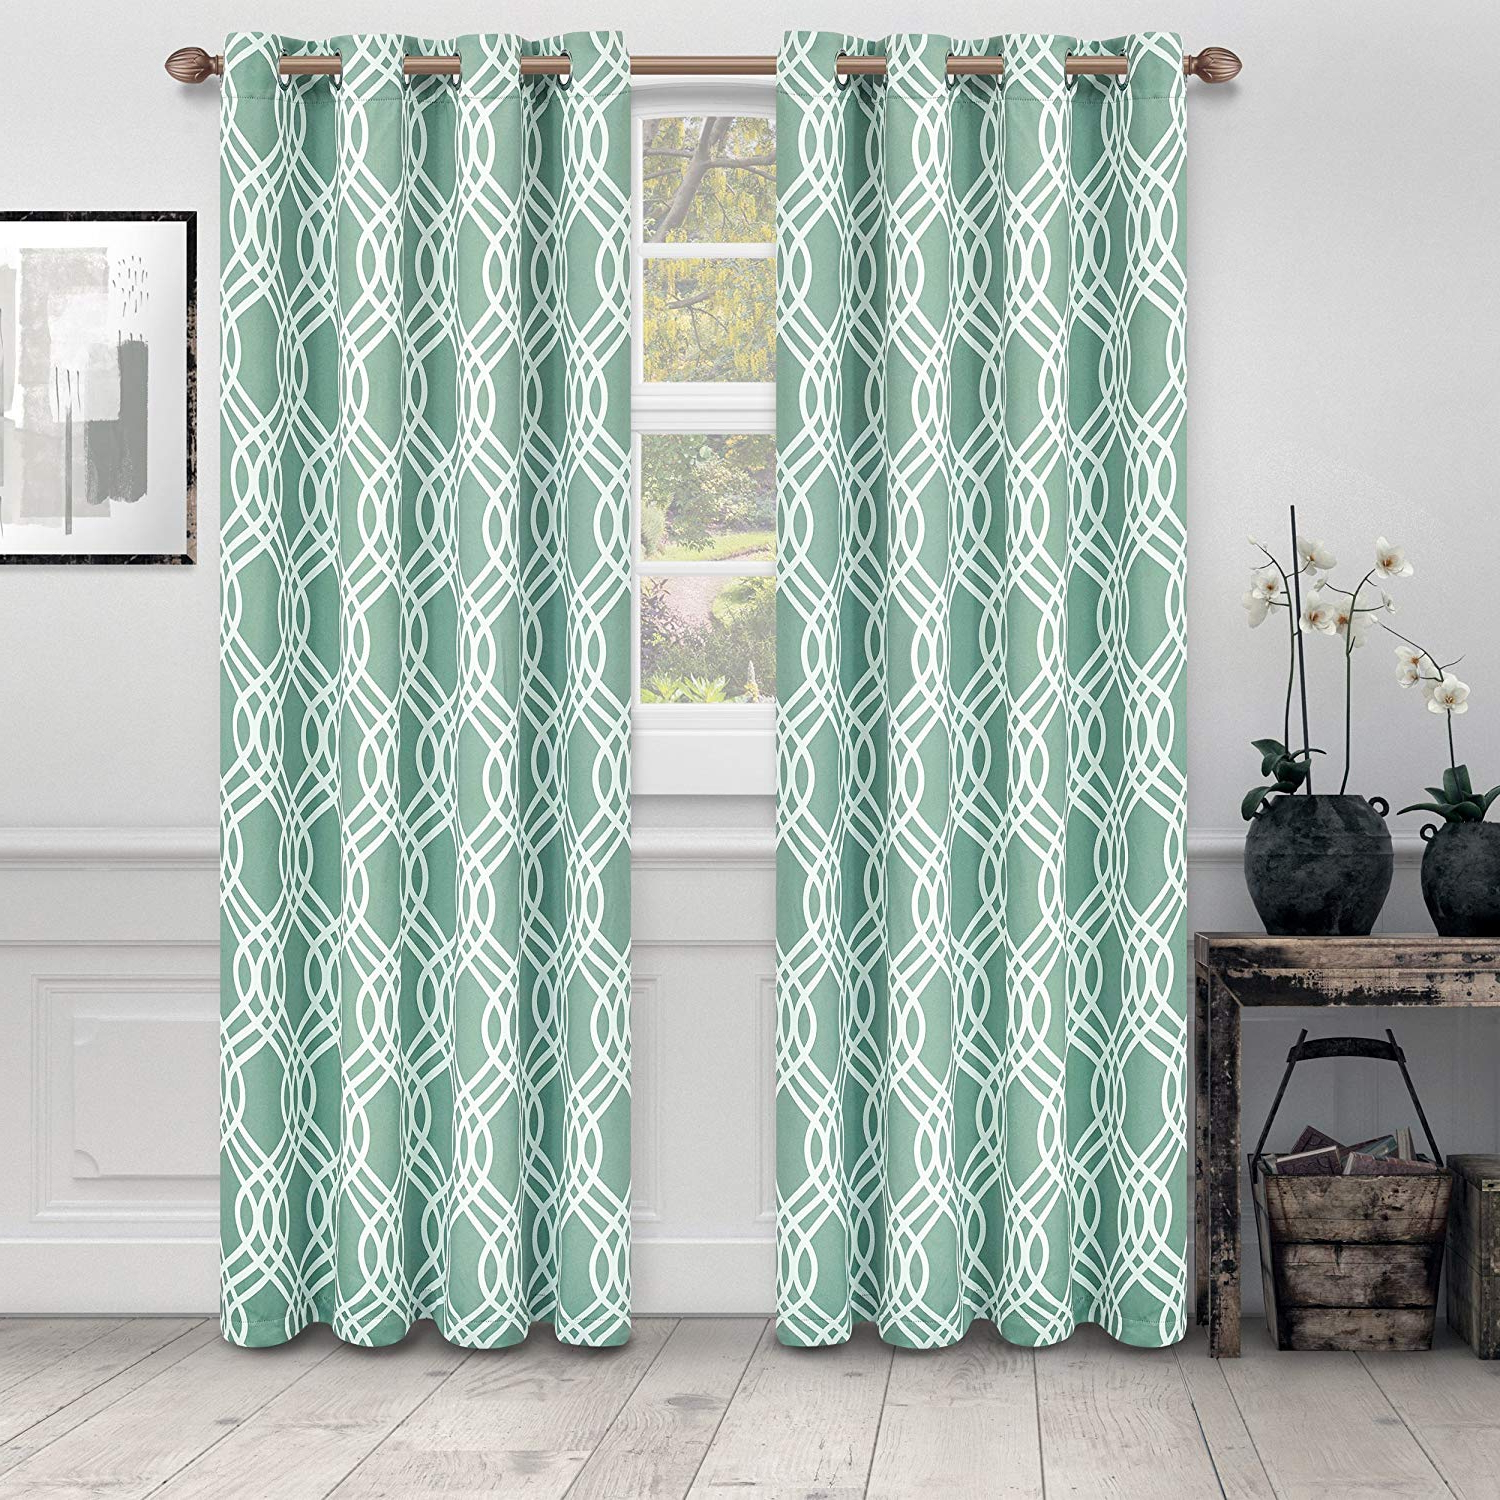 """Superior Ribbon Collection Quality Soft, Insulated, Thermal, Woven Blackout Grommet Printed Curtain Panel Pair (set Of 2) 52"""" X 63"""" – Teal Regarding Newest Insulated Thermal Blackout Curtain Panel Pairs (View 15 of 20)"""